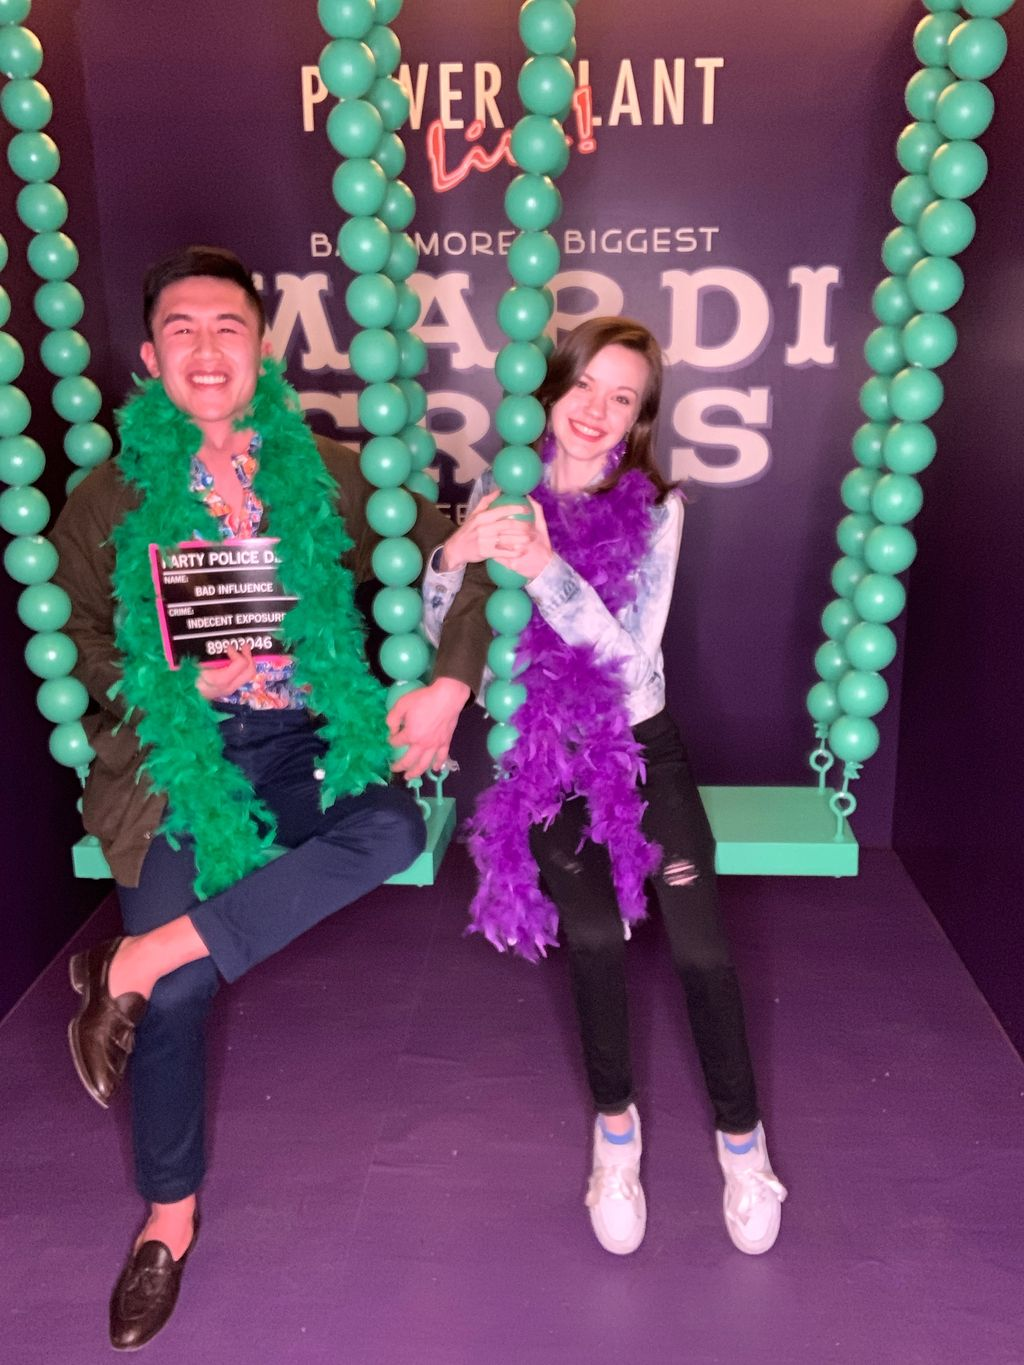 Mardi Gras Swing Activation at Power Plant LIVE